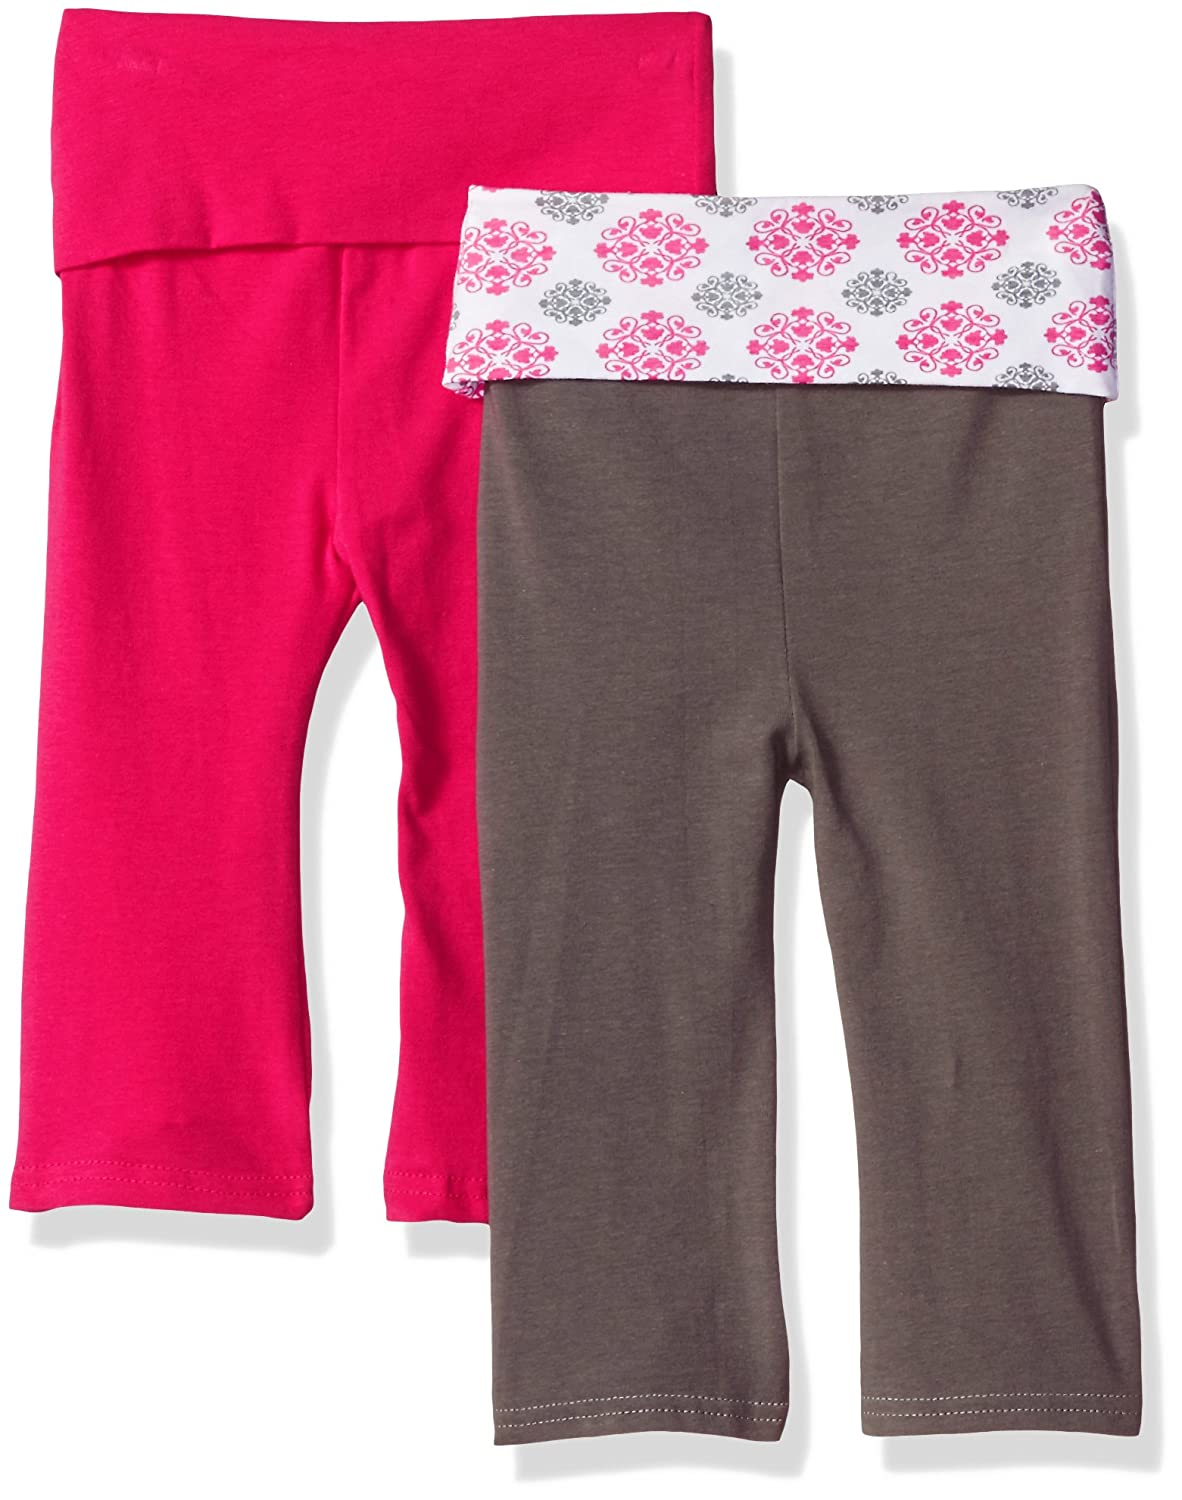 Yoga Sprout Baby Cotton Pants, 90095